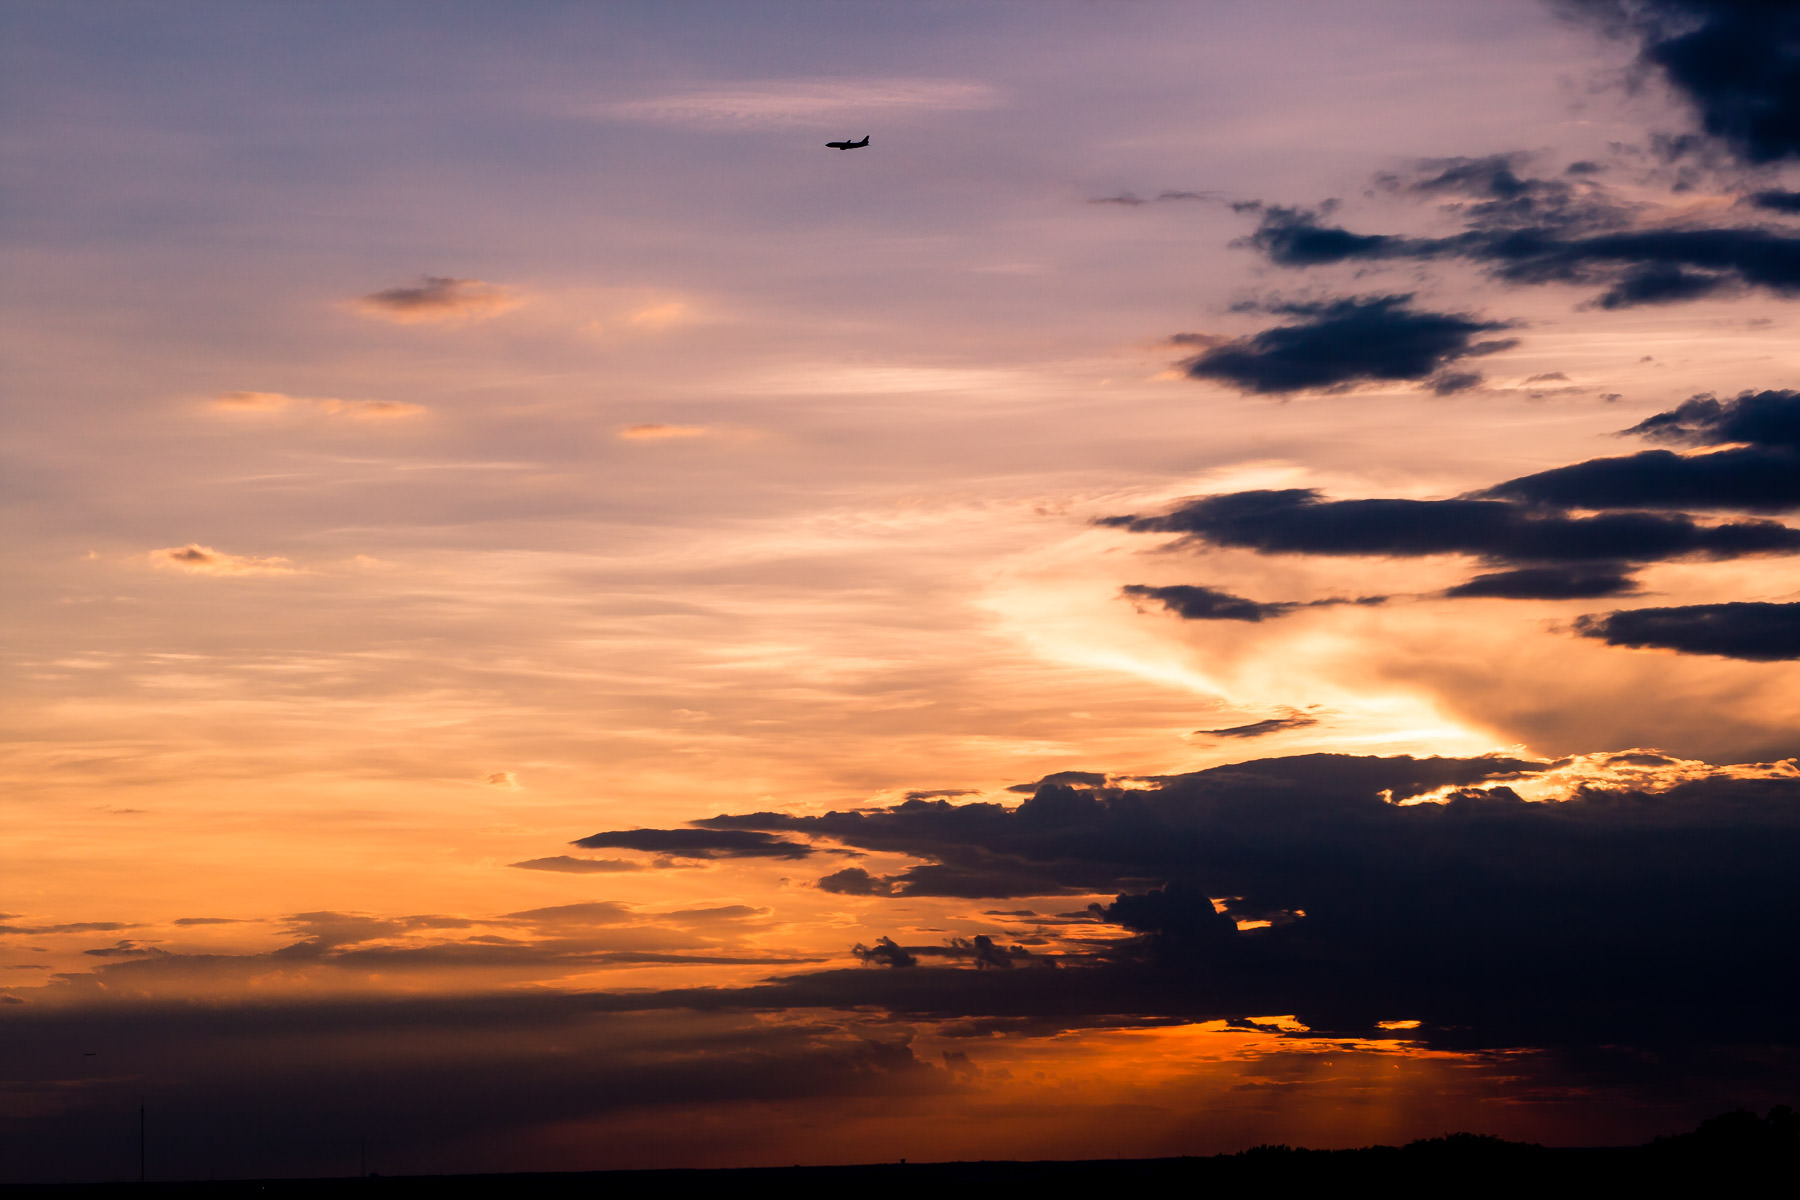 A jet on approach to DFW International Airport as the sun sets on Far North Dallas, Texas.